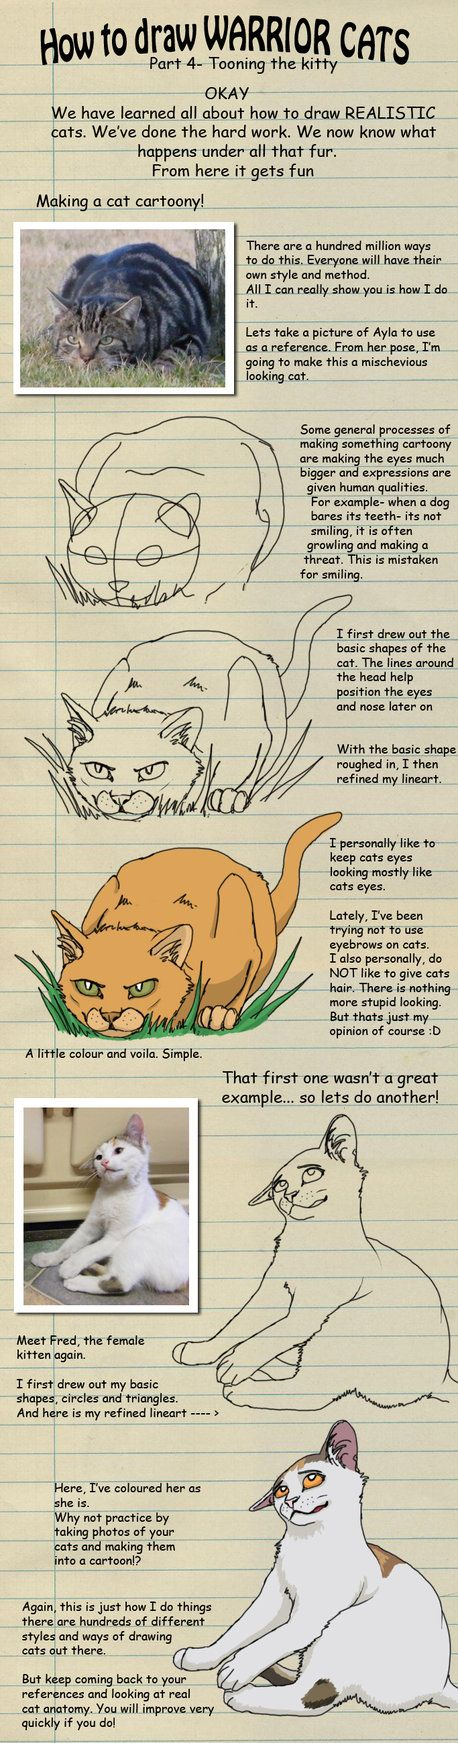 How to draw Warrior cats pt 4 by *heylorlass on deviantART | Just adding this because when i was little, i used to read these all the time | And i guess you can use these to make a manga kitty??..